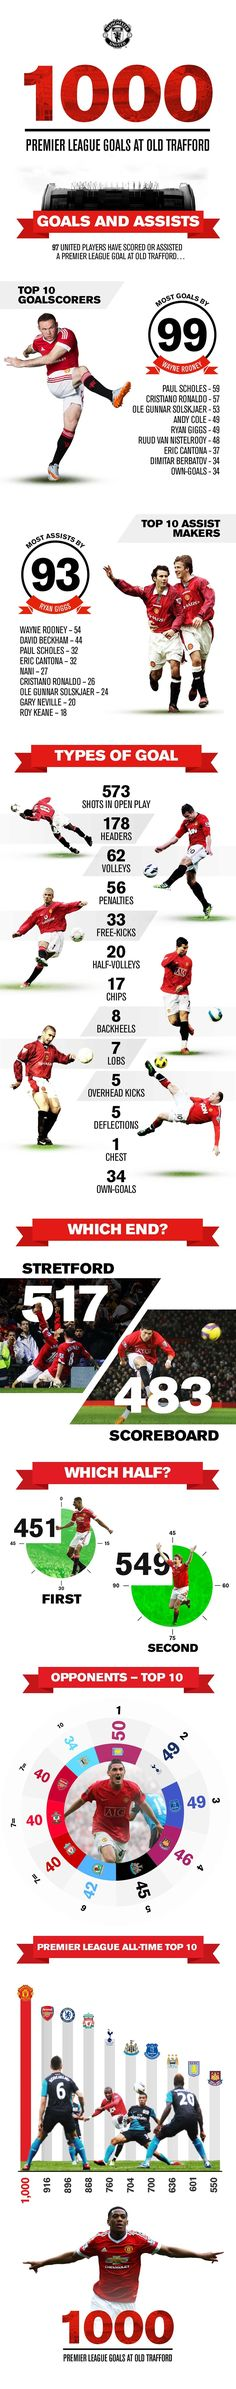 Premier League goals at Old Trafford infographic - Official Manchester United Website Manchester United Team, Official Manchester United Website, Ac Milan, As Roma, Premier League Goals, Blackburn Rovers, Man Utd News, Best Football Team, Sports Wallpapers